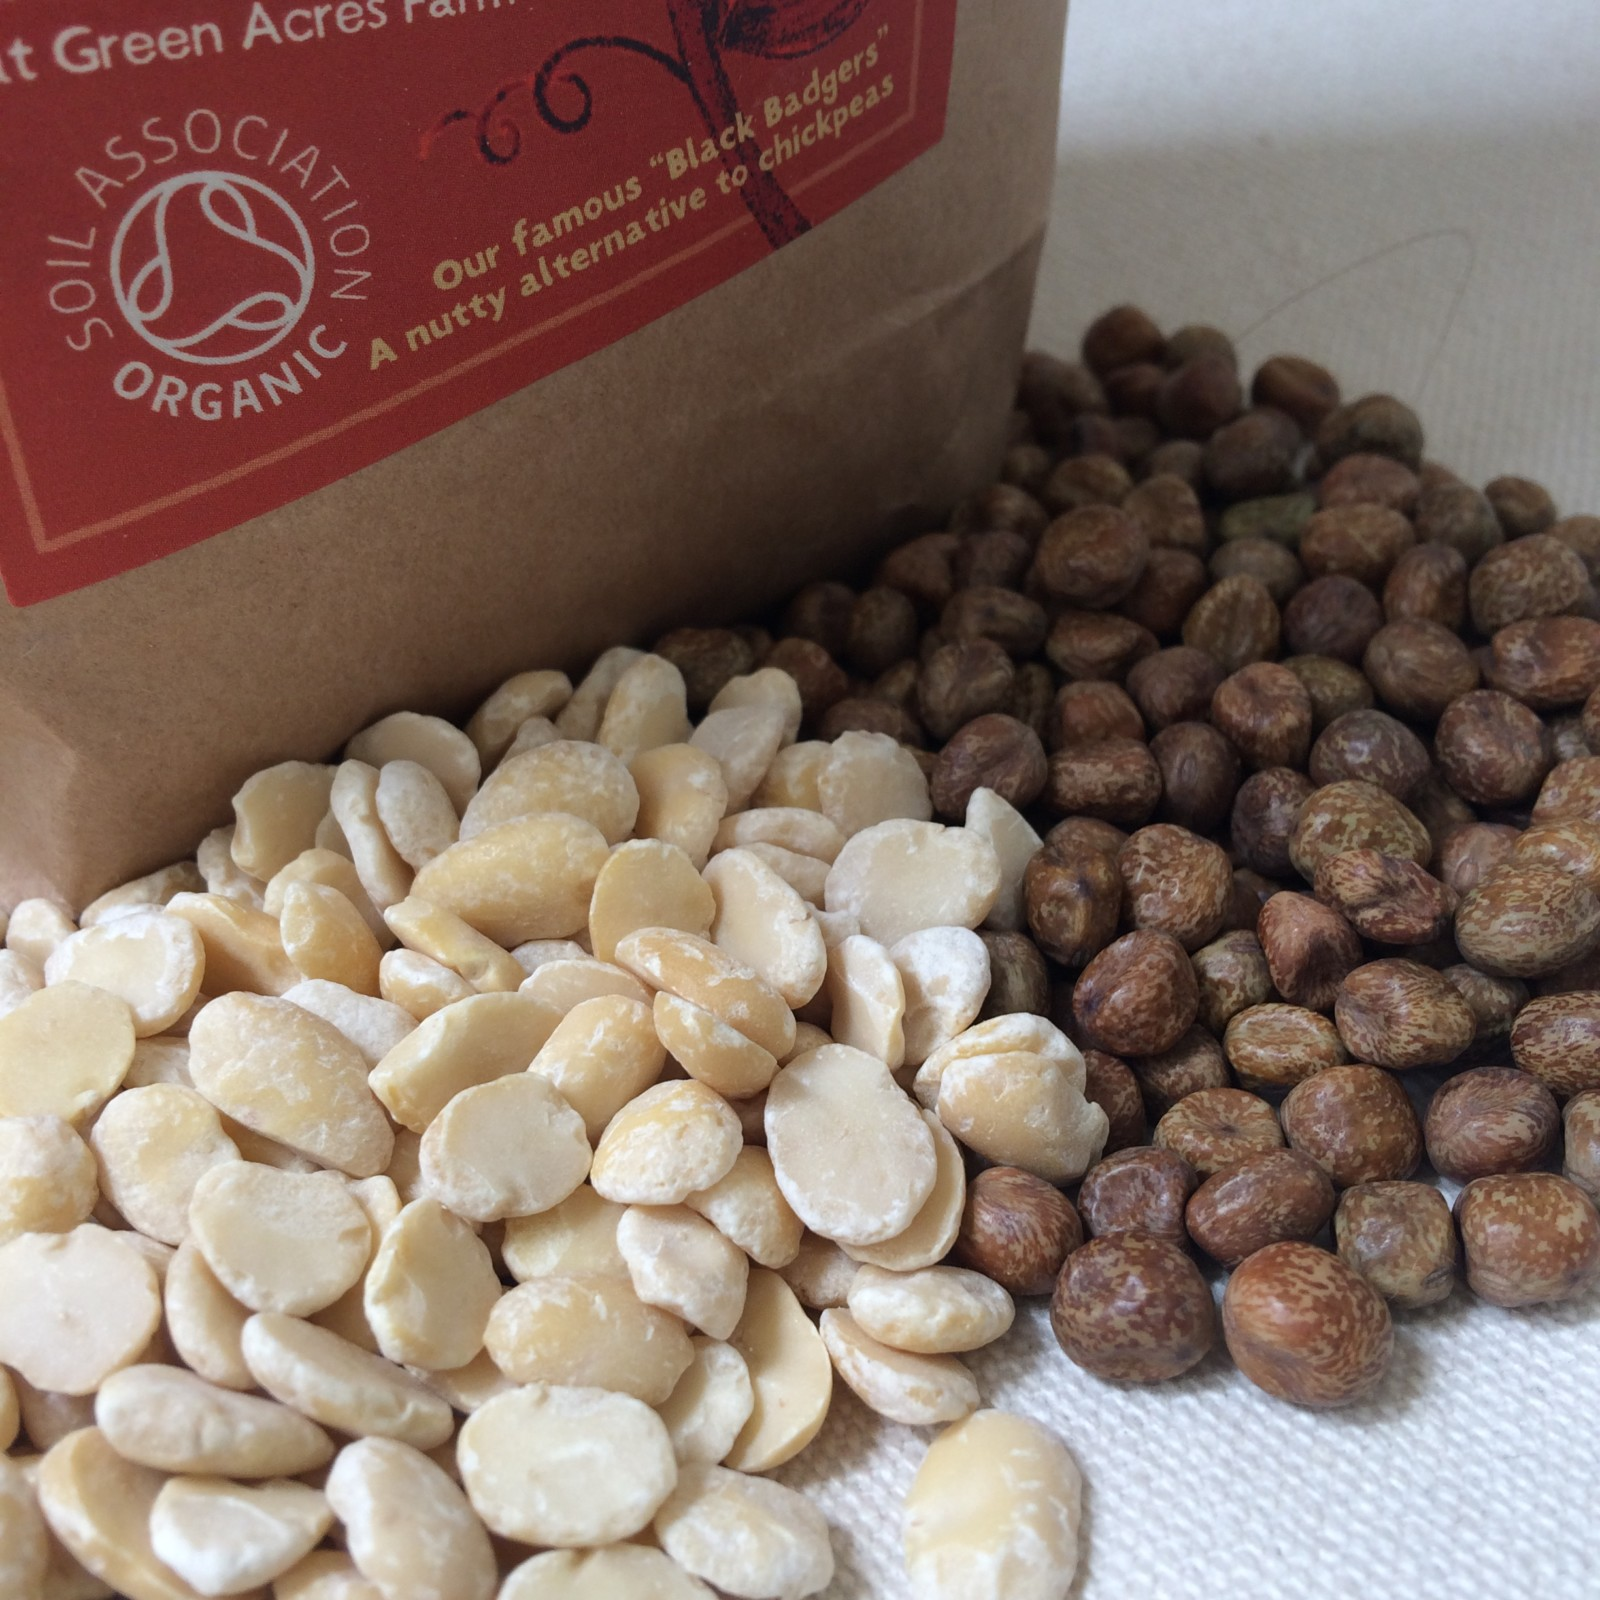 The Slowfix: Dried Pulses